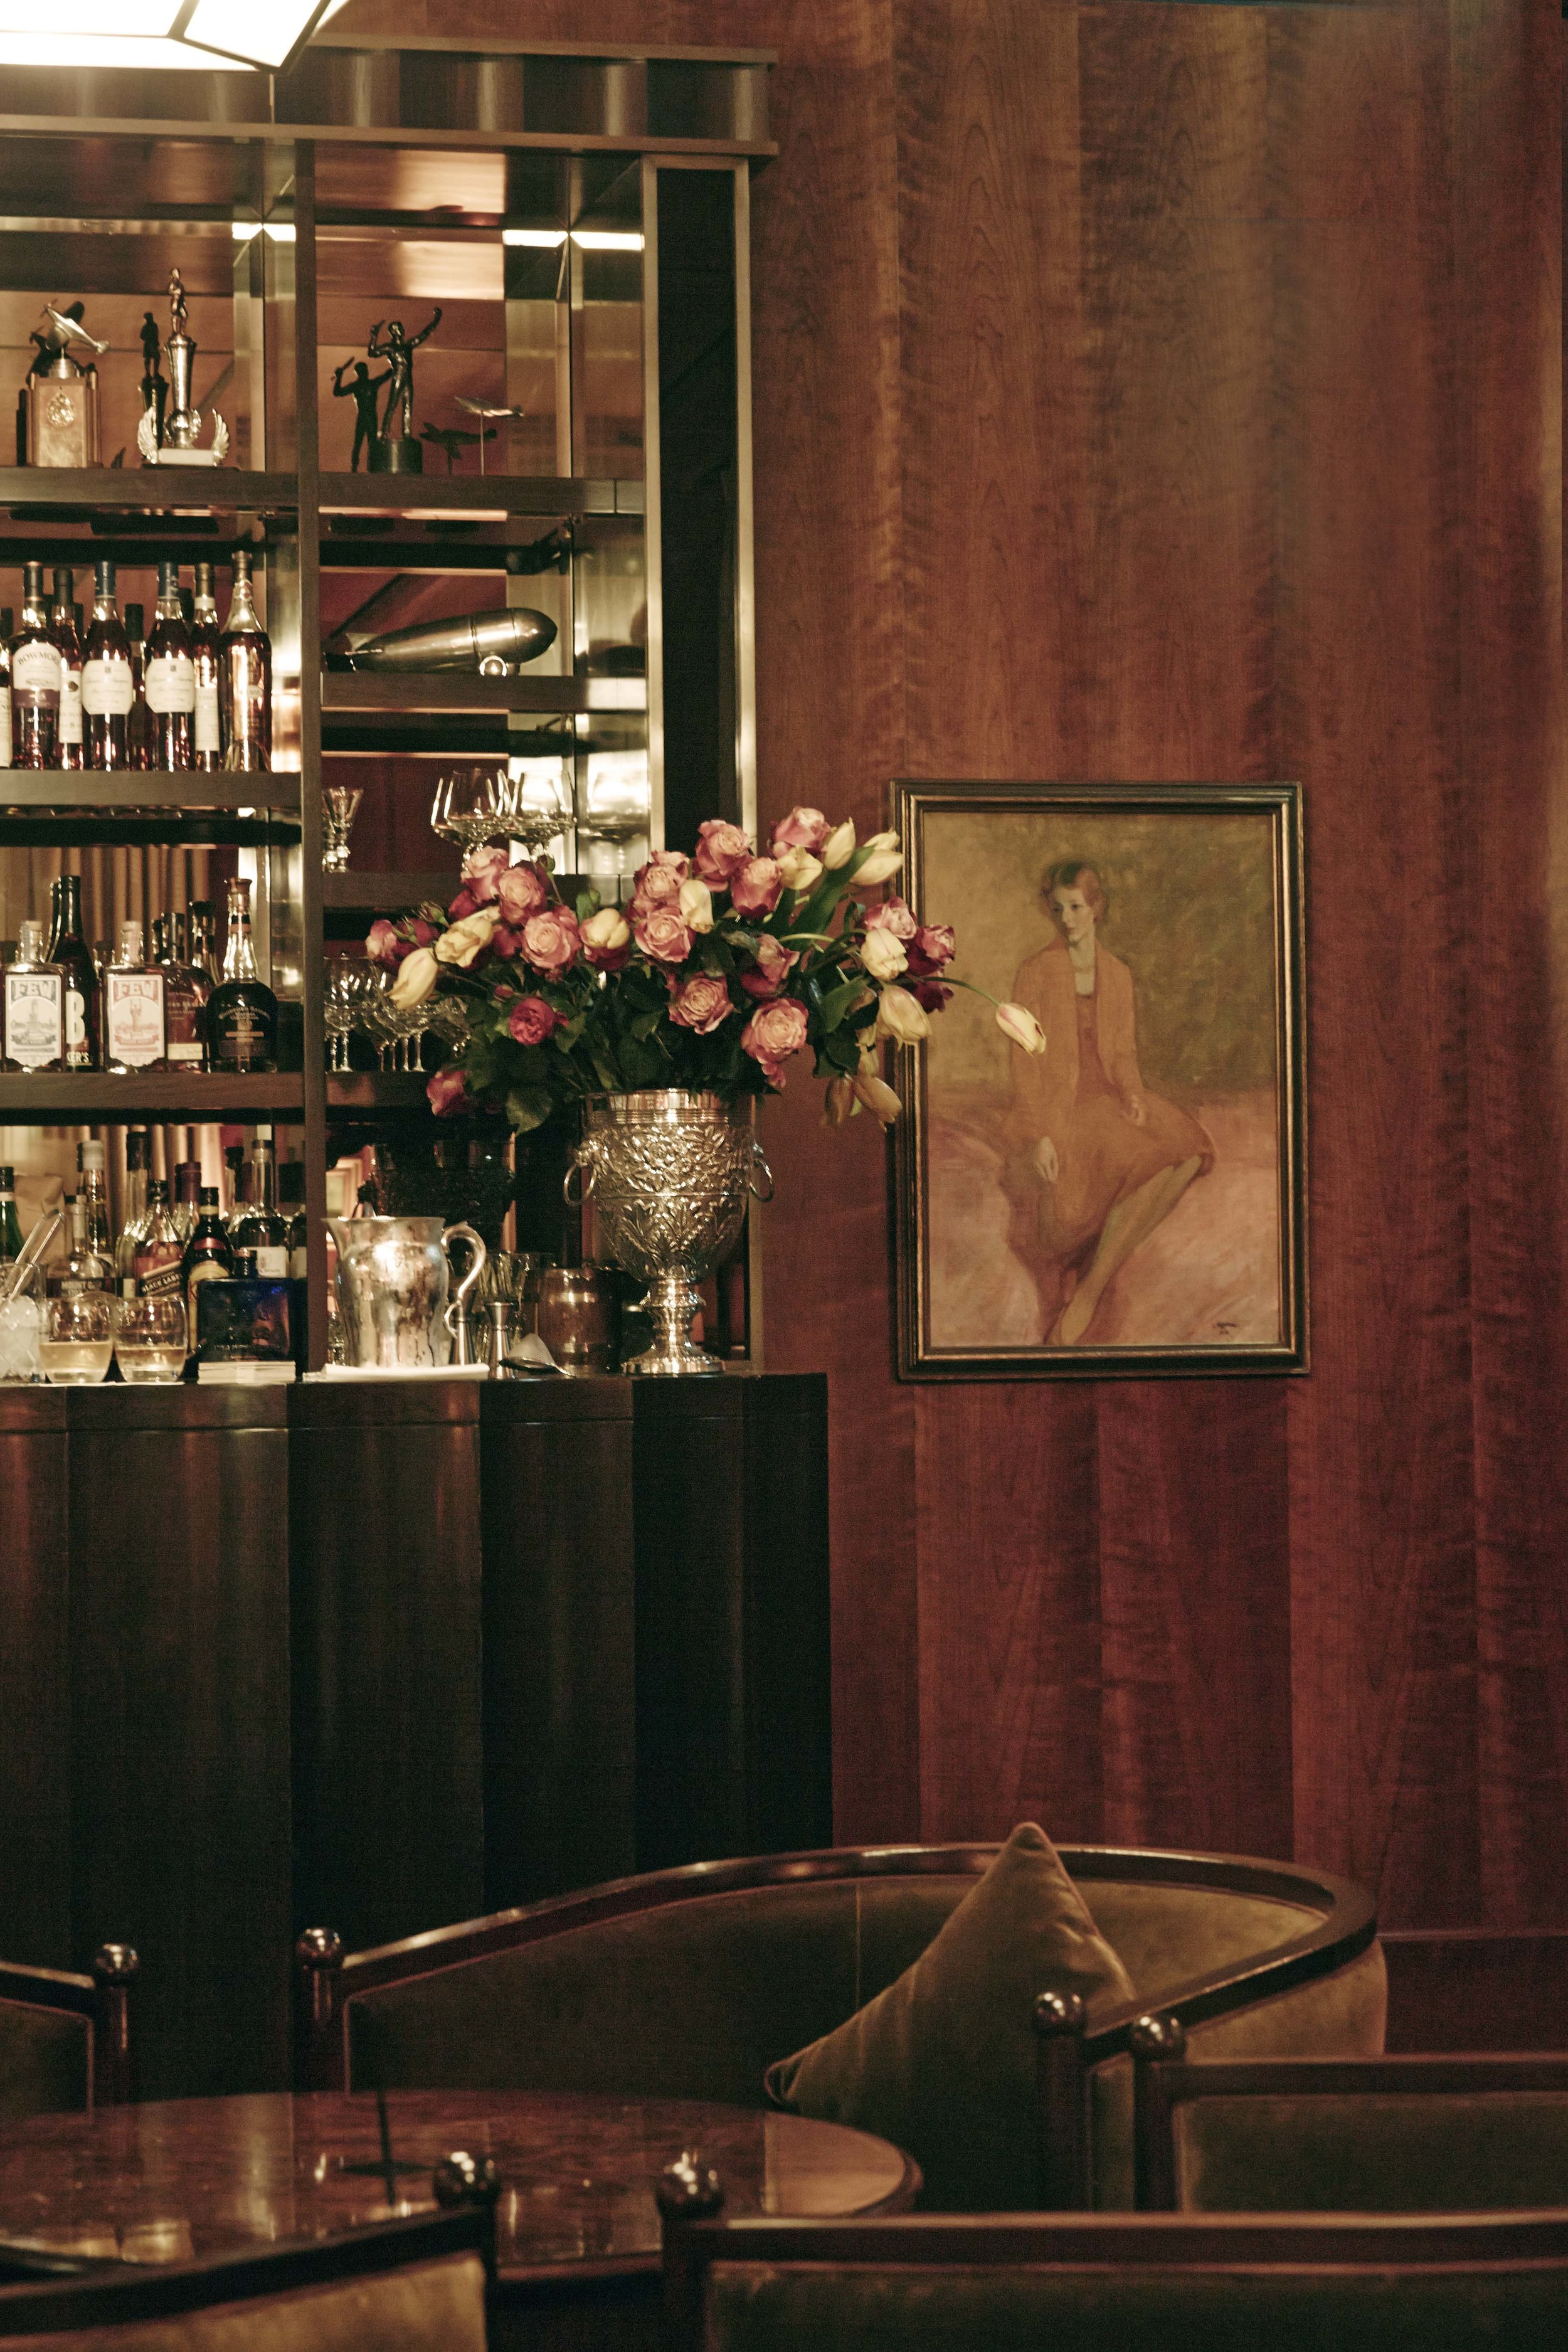 Even the little details in the guests-only Cub Bar are perfect, and make you feel at home